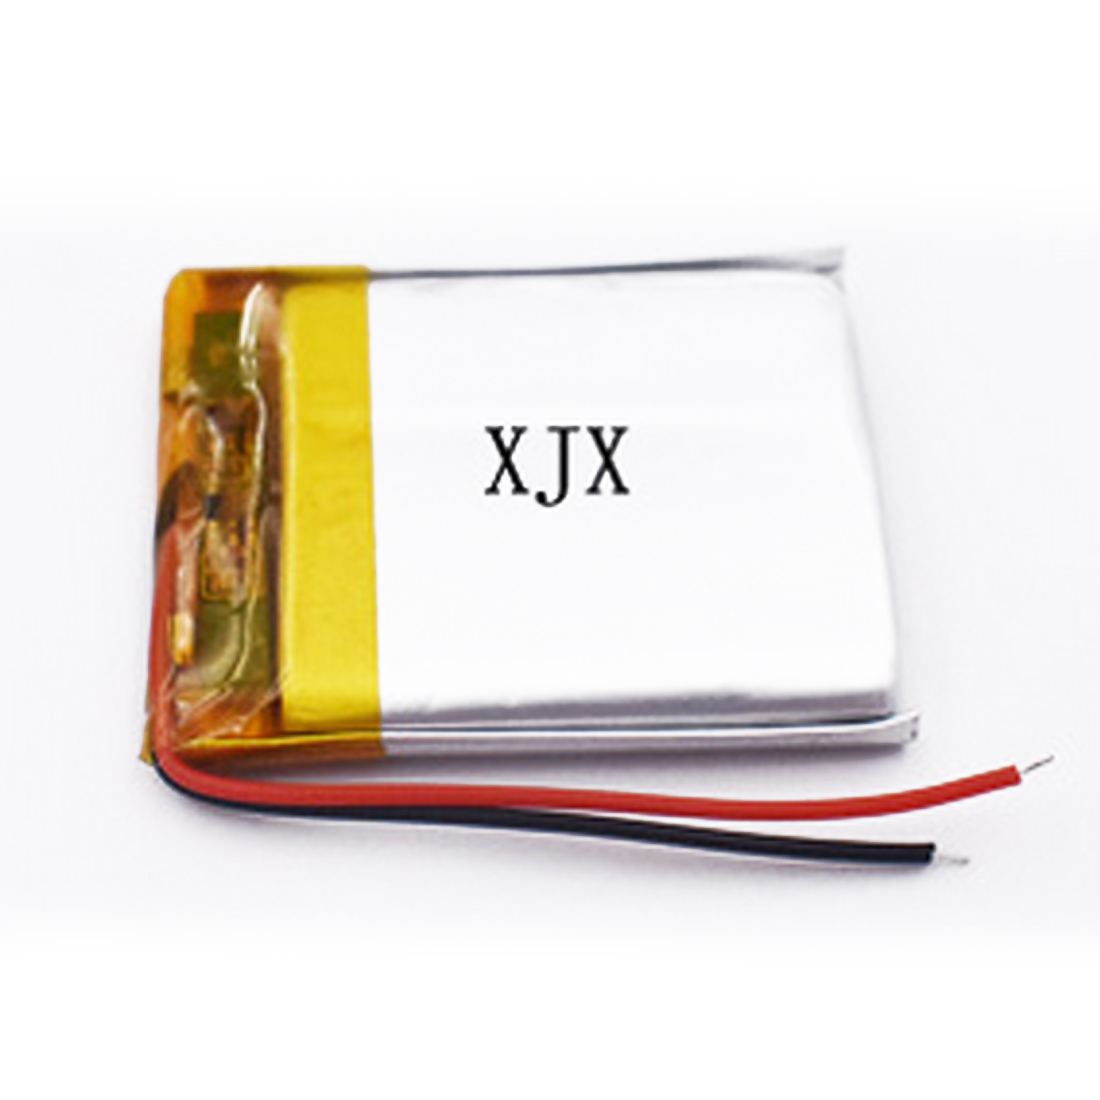 1Pcs <font><b>3.7V</b></font> <font><b>500mAh</b></font> Lithium Polymer <font><b>Battery</b></font> 3 7V Volt <font><b>503035</b></font> Li po ion Lipo Rechargeable <font><b>Batteries</b></font> for DVD GPS Navigation image